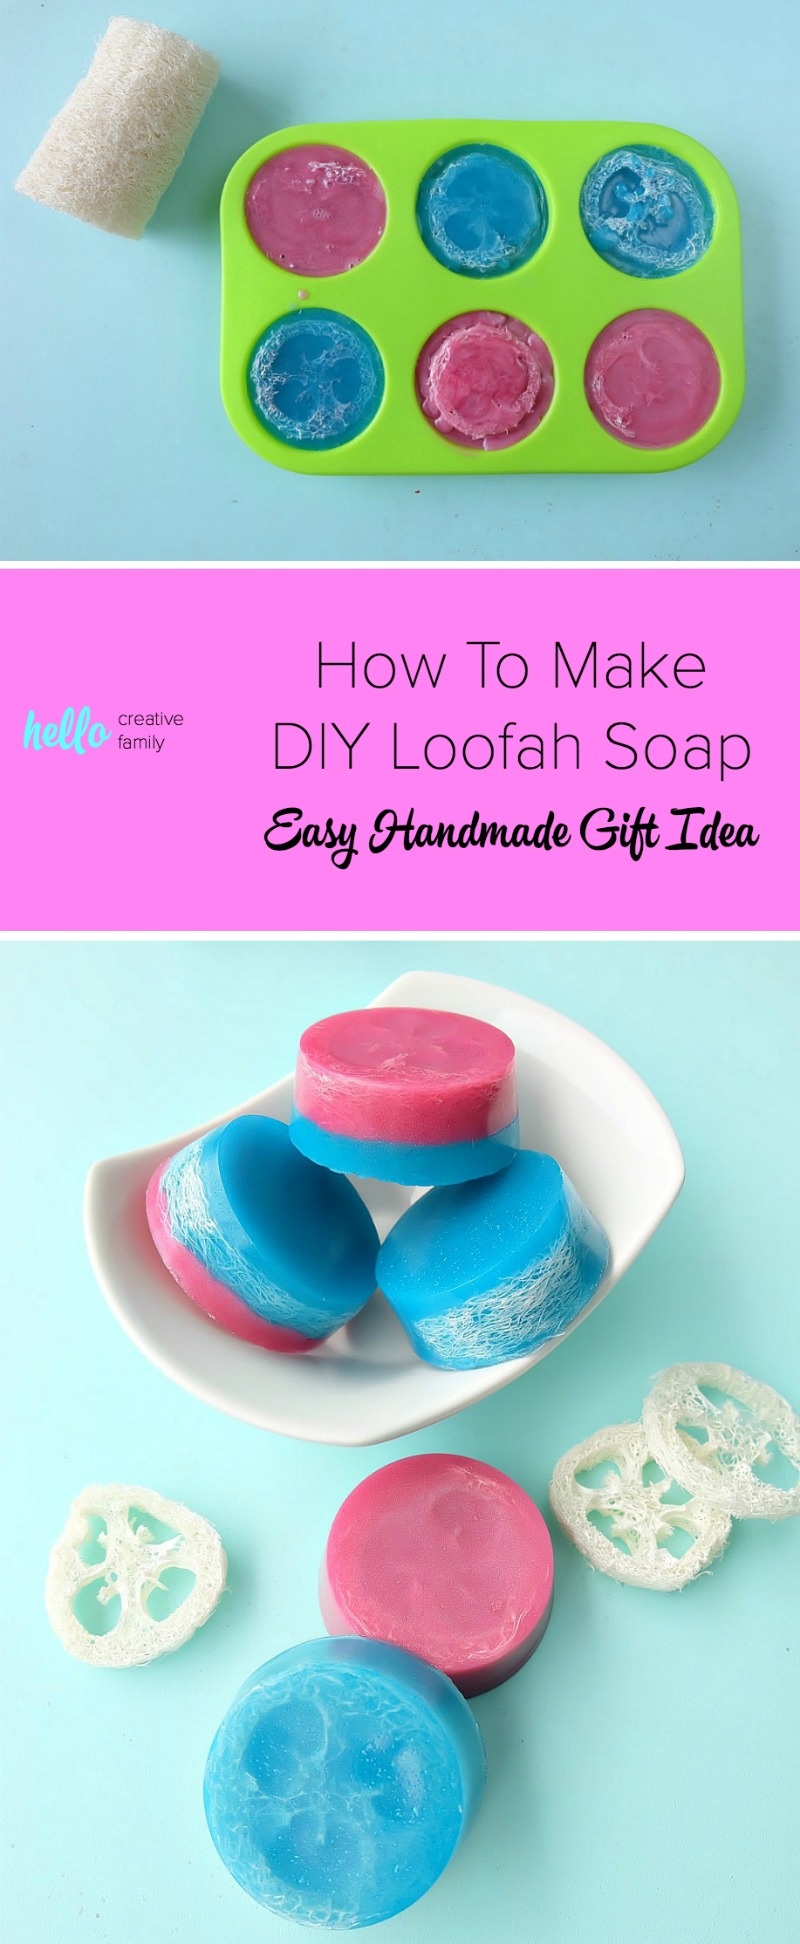 Soap making doesn't have to be complicated! In this post you'll learn how to make DIY Loofah Soap in minutes for an easy handmade gift idea! Combine the exfoliating power of natural loofah with the pampering properties of beautifully scented handmade soap! A fun and easy DIY body product! #naturalbeauty #beautyproducts #DIY #soapmaking